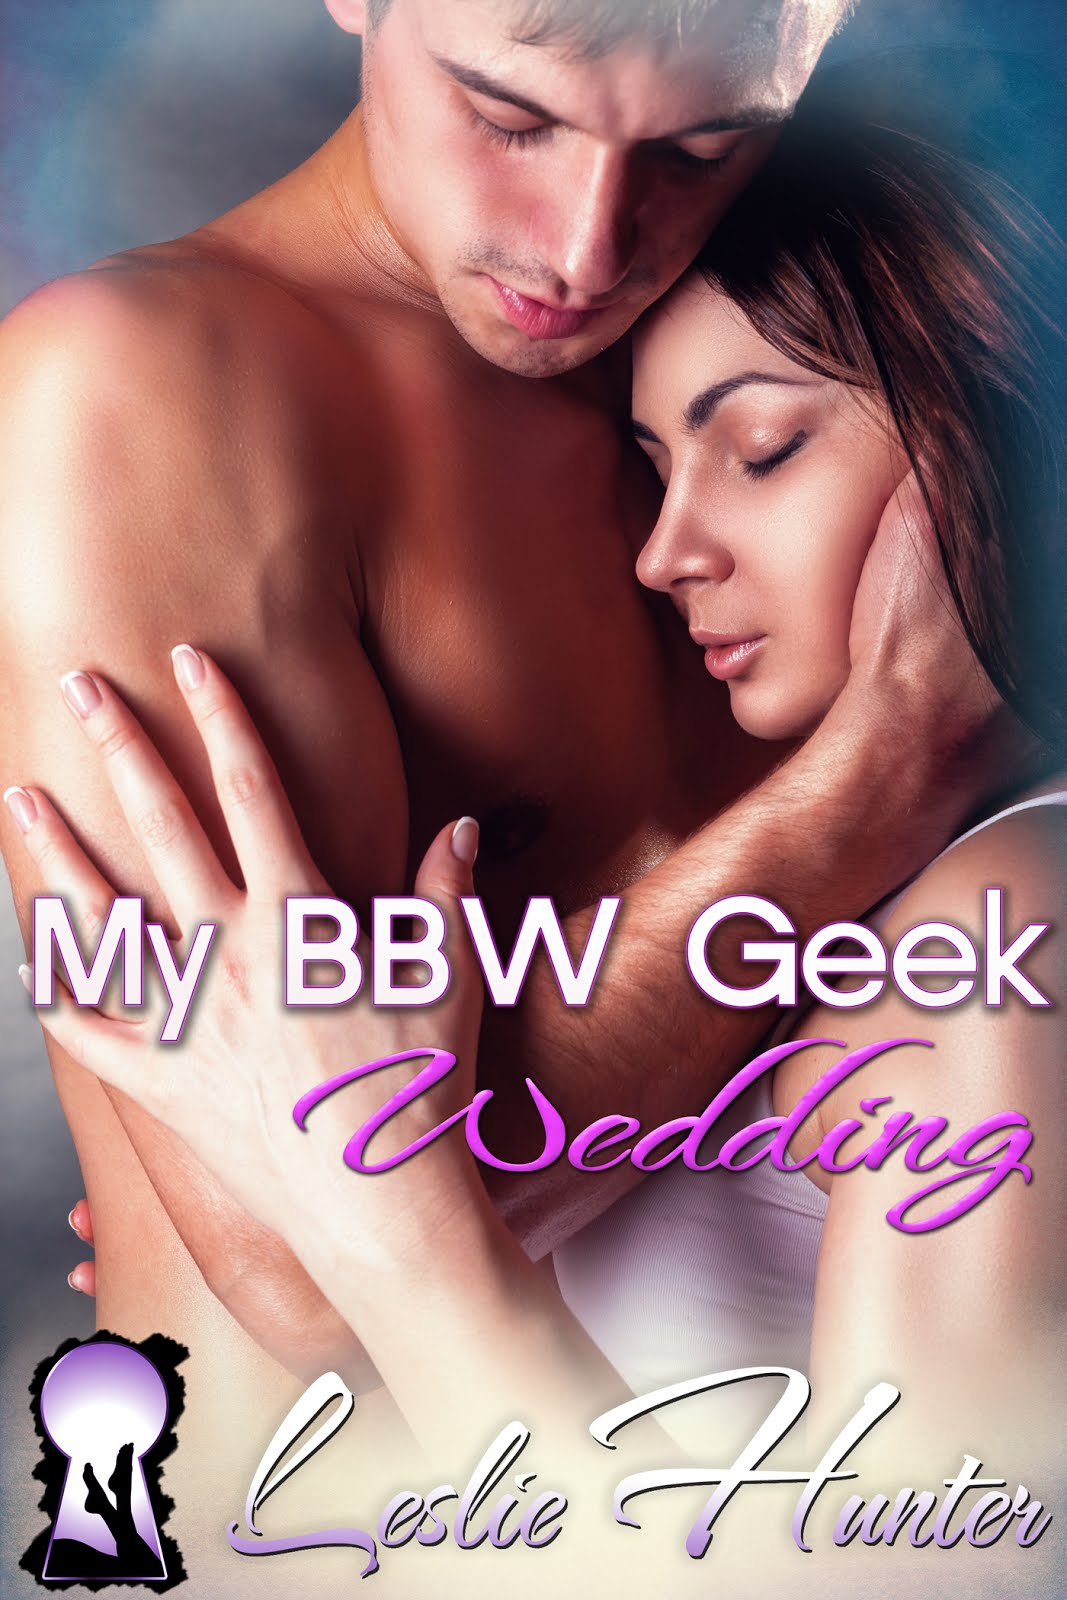 BBW Romance for 99 cents!